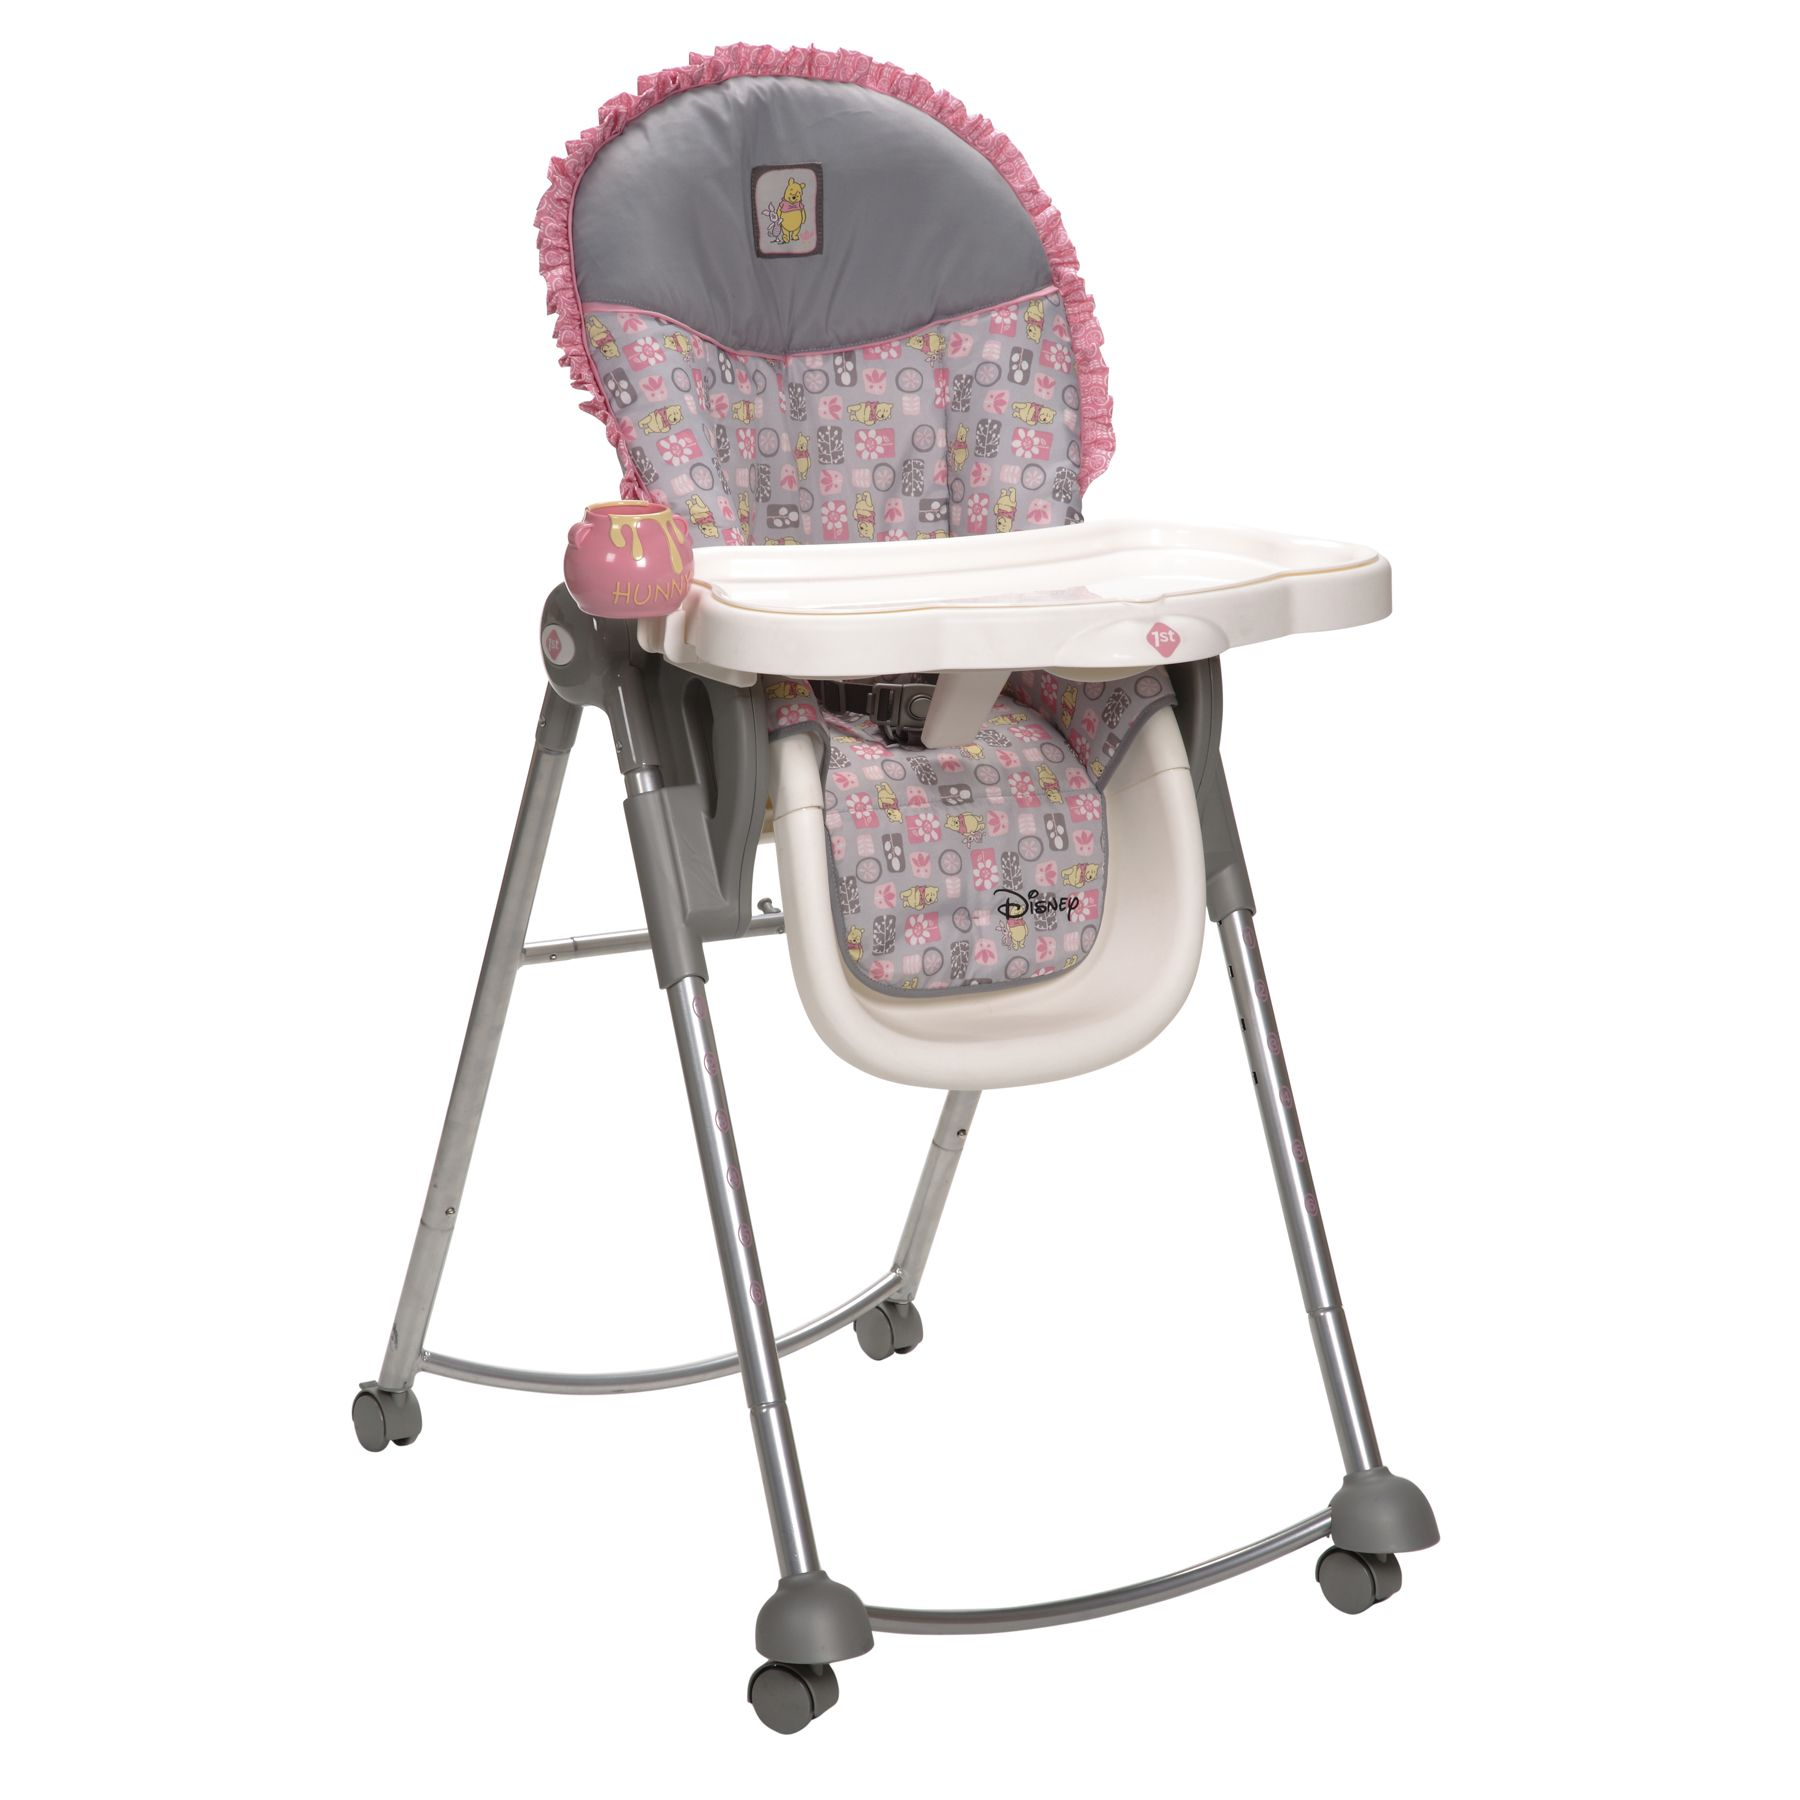 16 Cute Baby High Chairs For Boys And Girls Lovely Winnie The